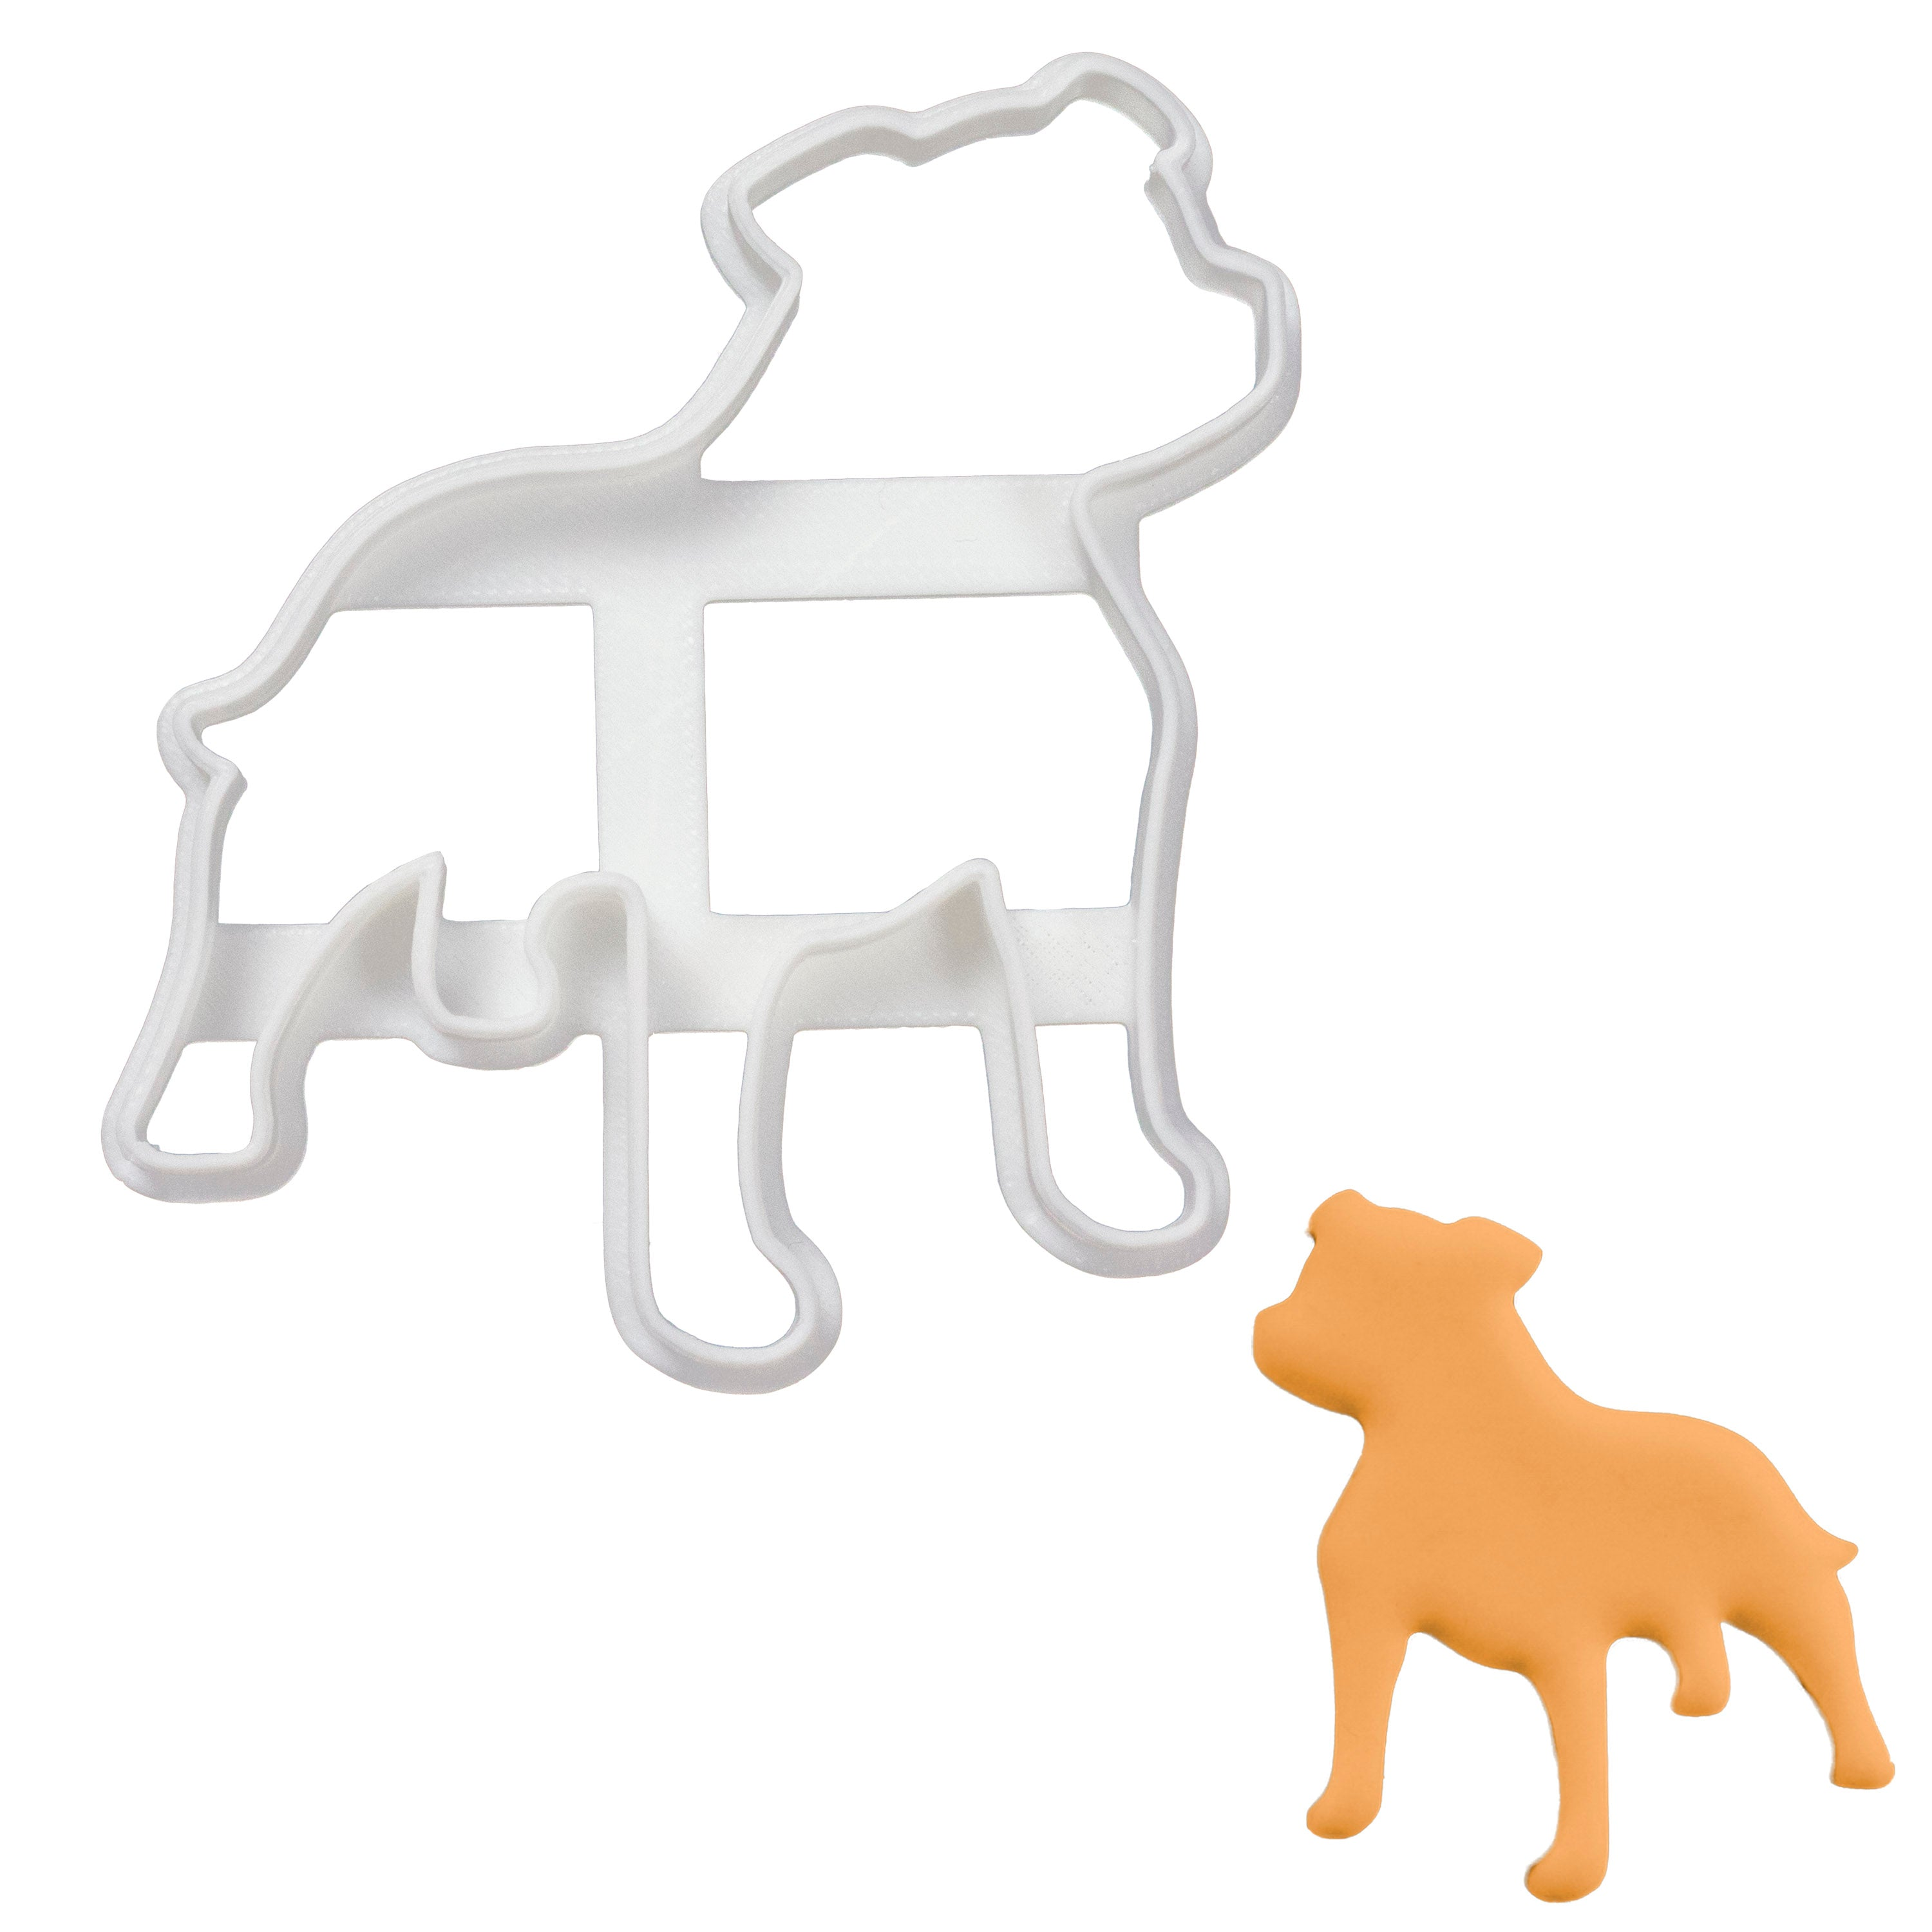 Staffy Staffordshire Bull Terrier Sihouette cookie cutter